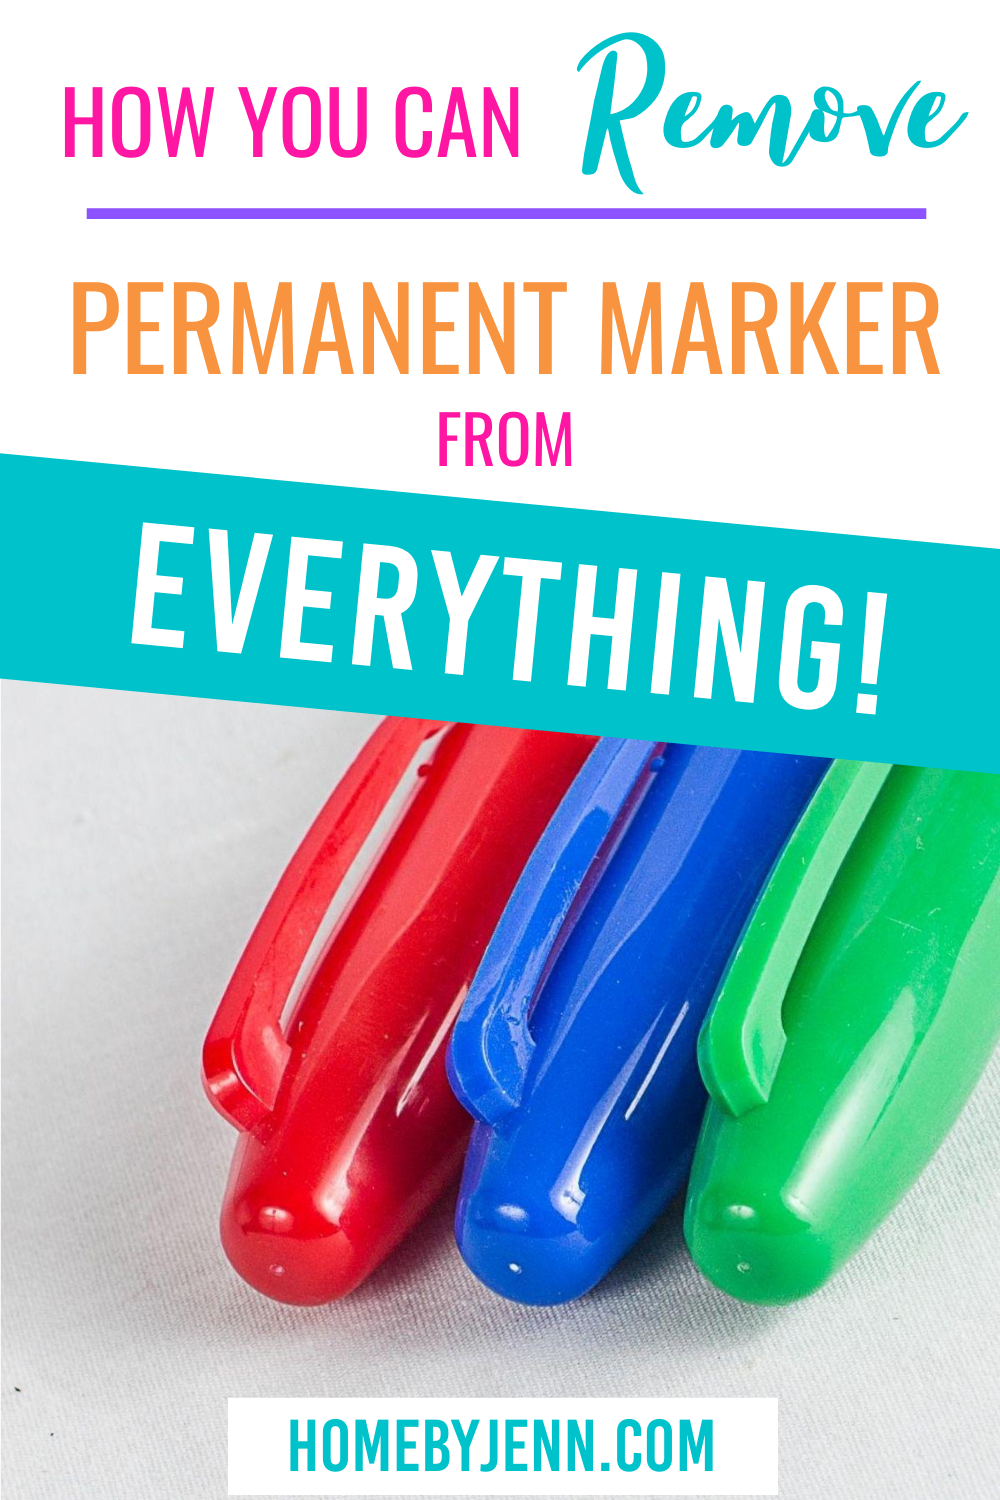 Remove permanent marker from anything with these cleaning tips. Items aren't ruined with these cleaning hacks. #cleaningtips #cleaninghacks #cleaningtipsandtricks #removepermanentmarker via @homebyjenn